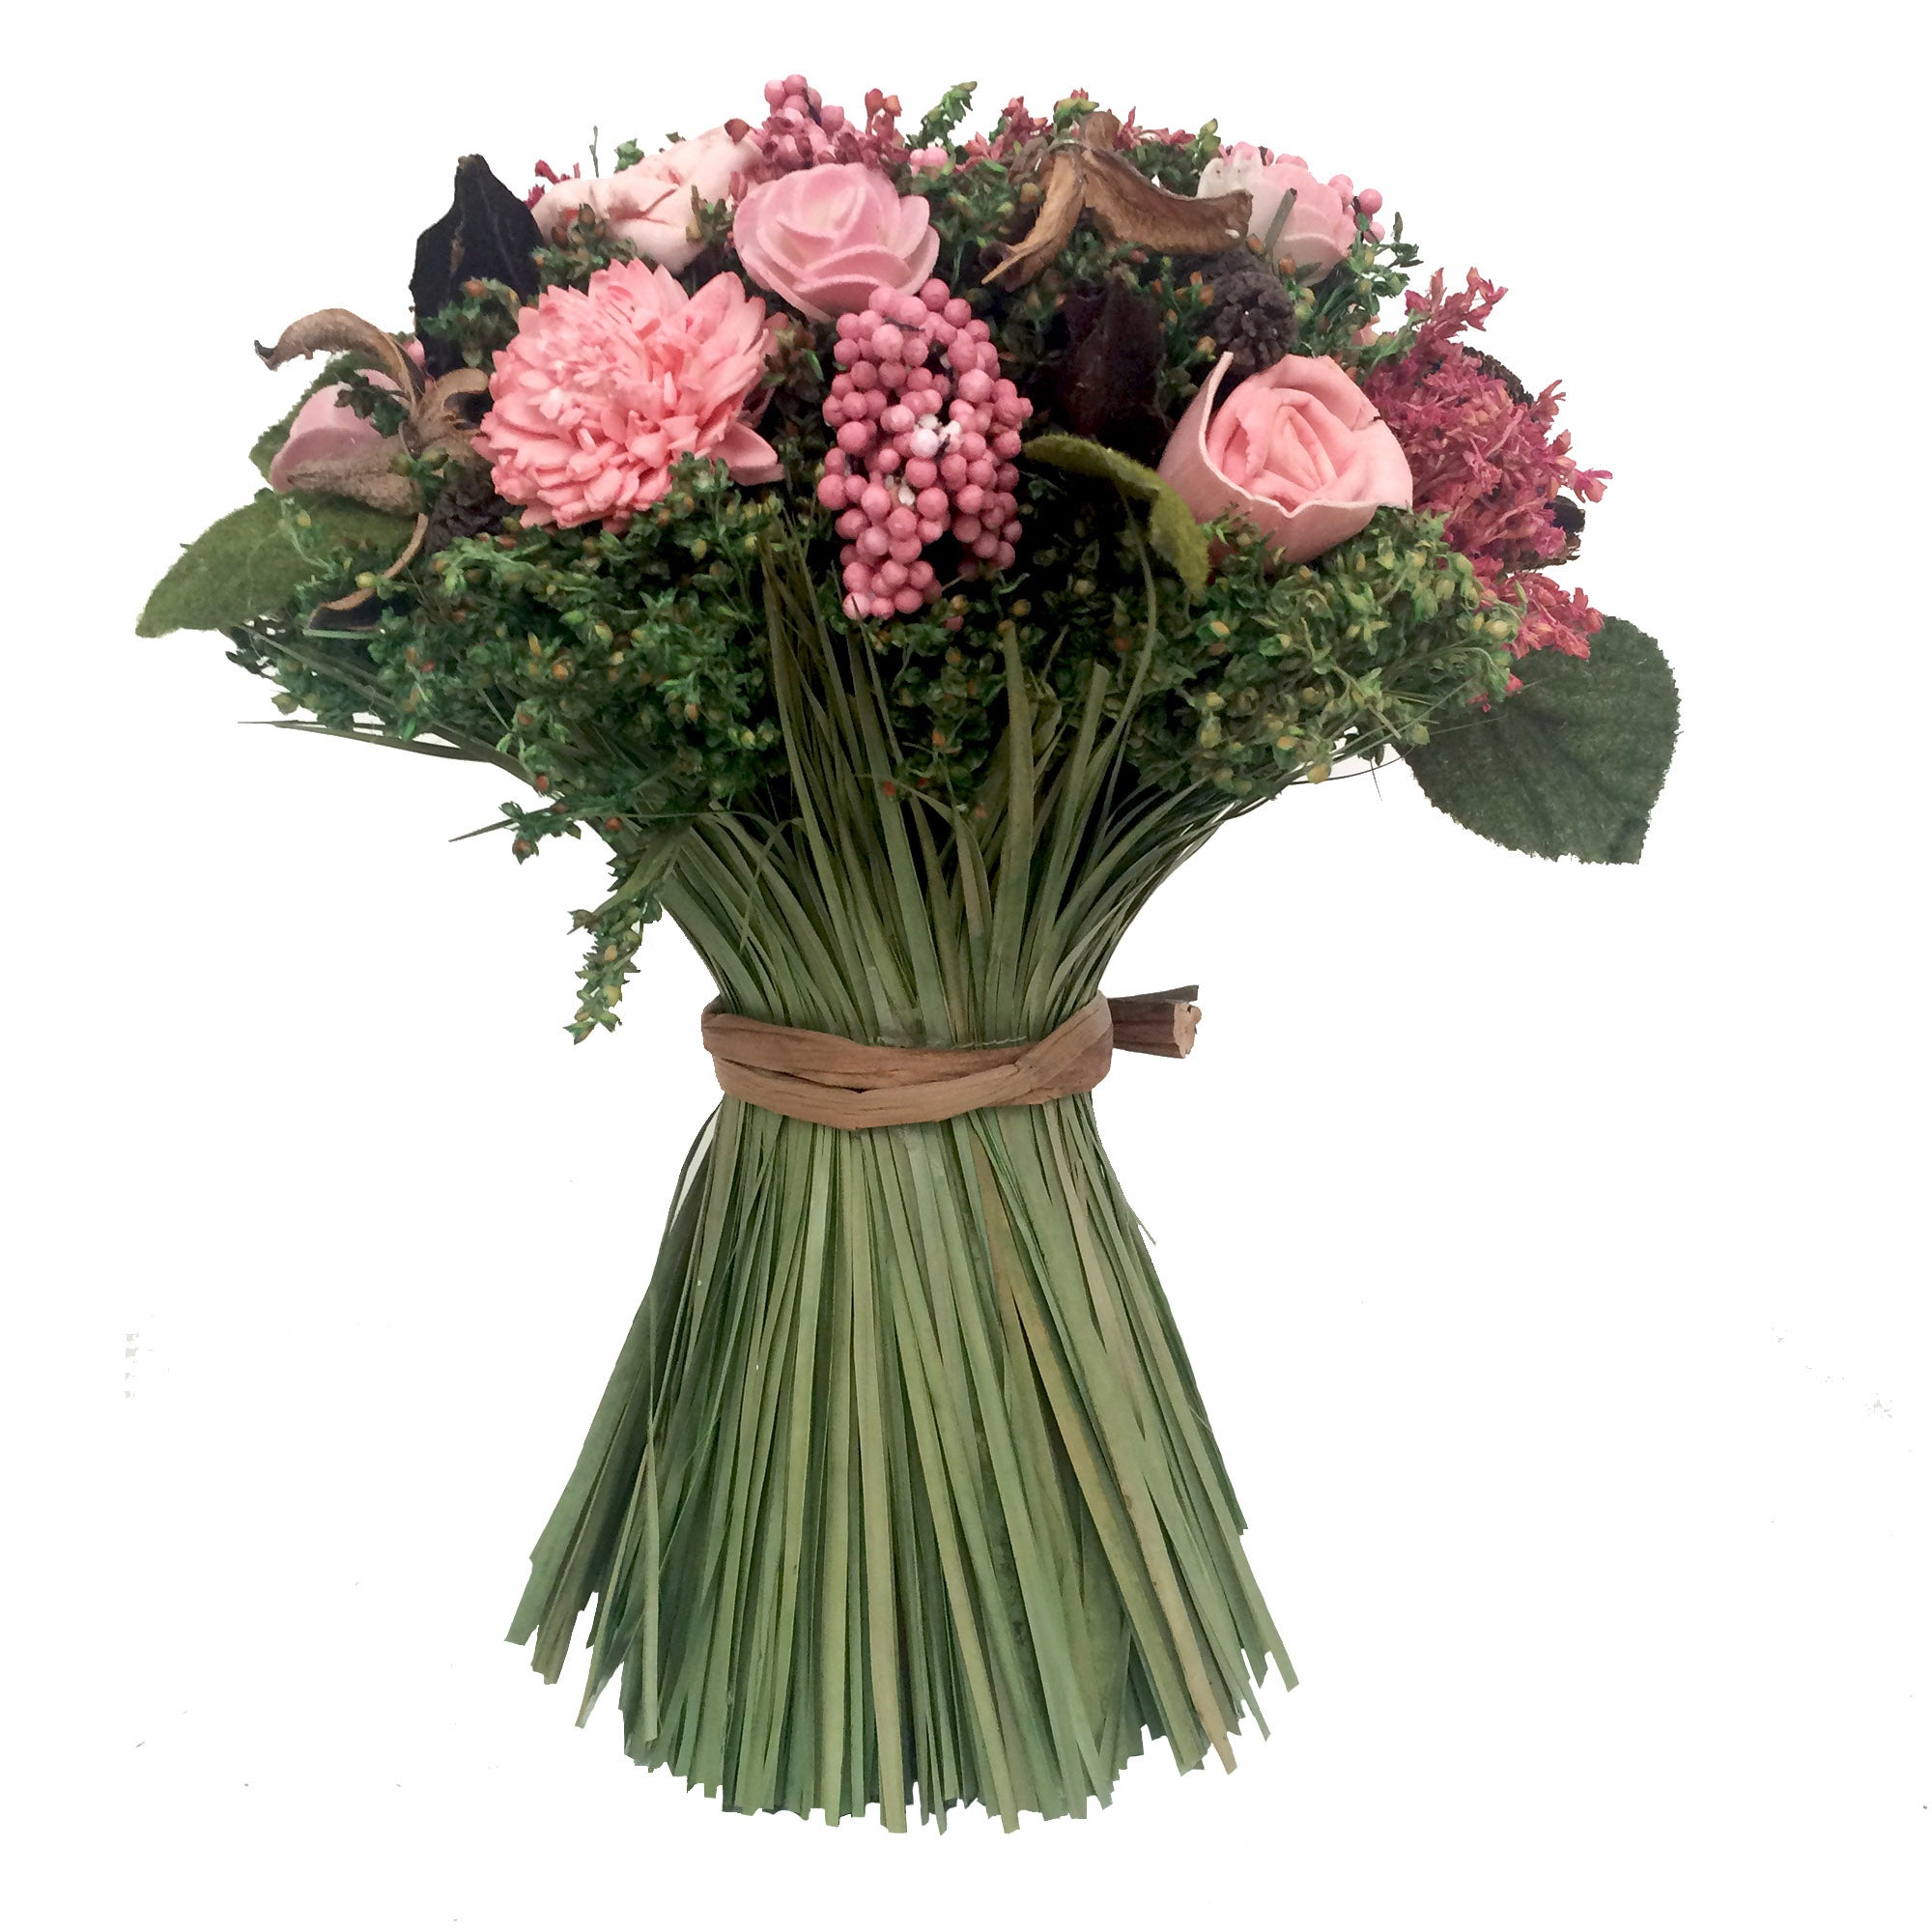 Image of Mixed Dried Flower Bush Pink